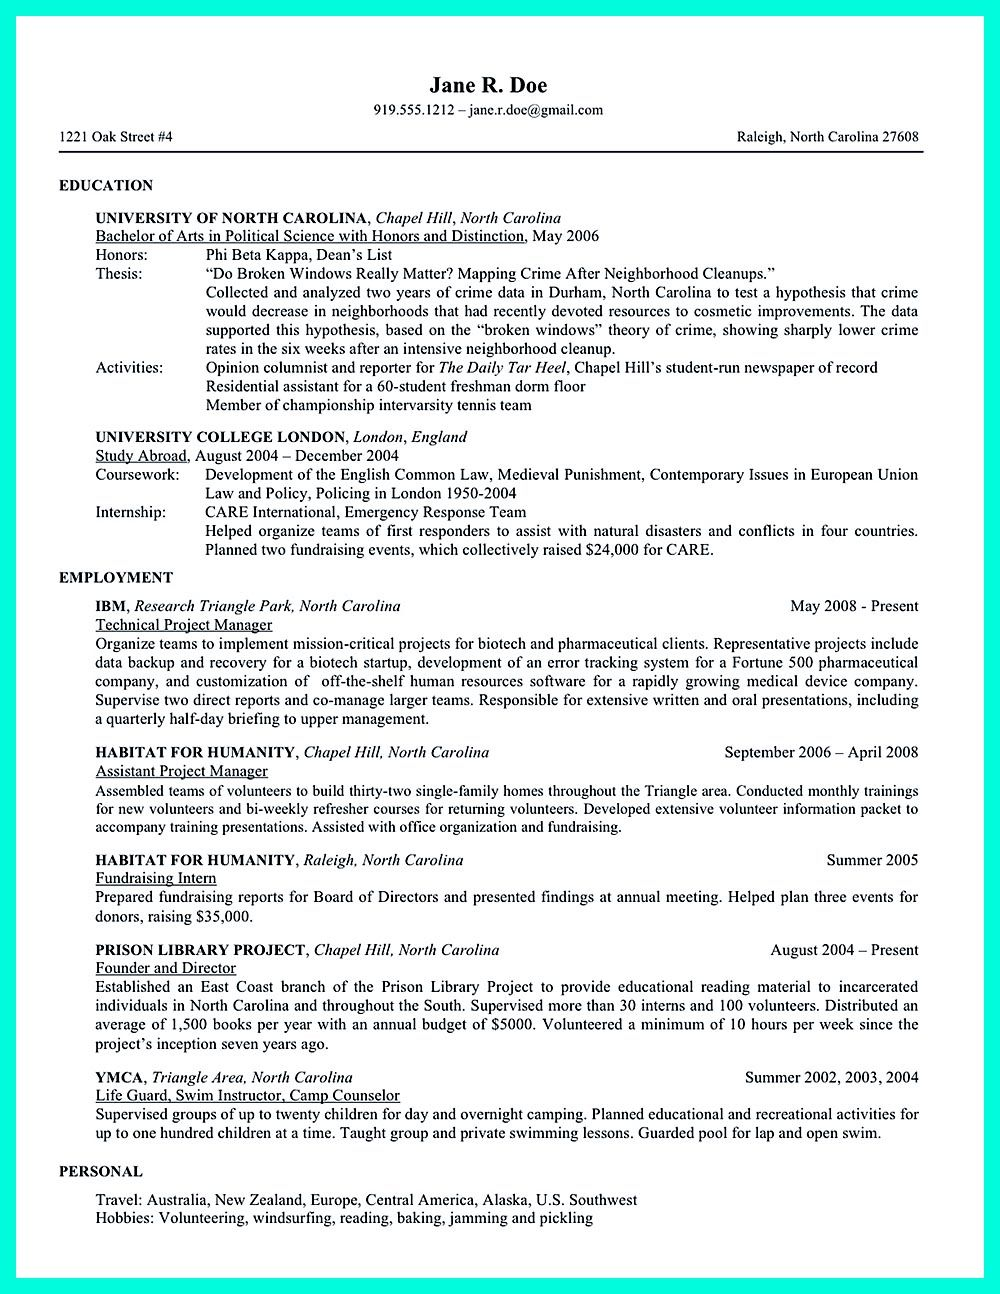 College Application Resume is very advantageous when you want to ...